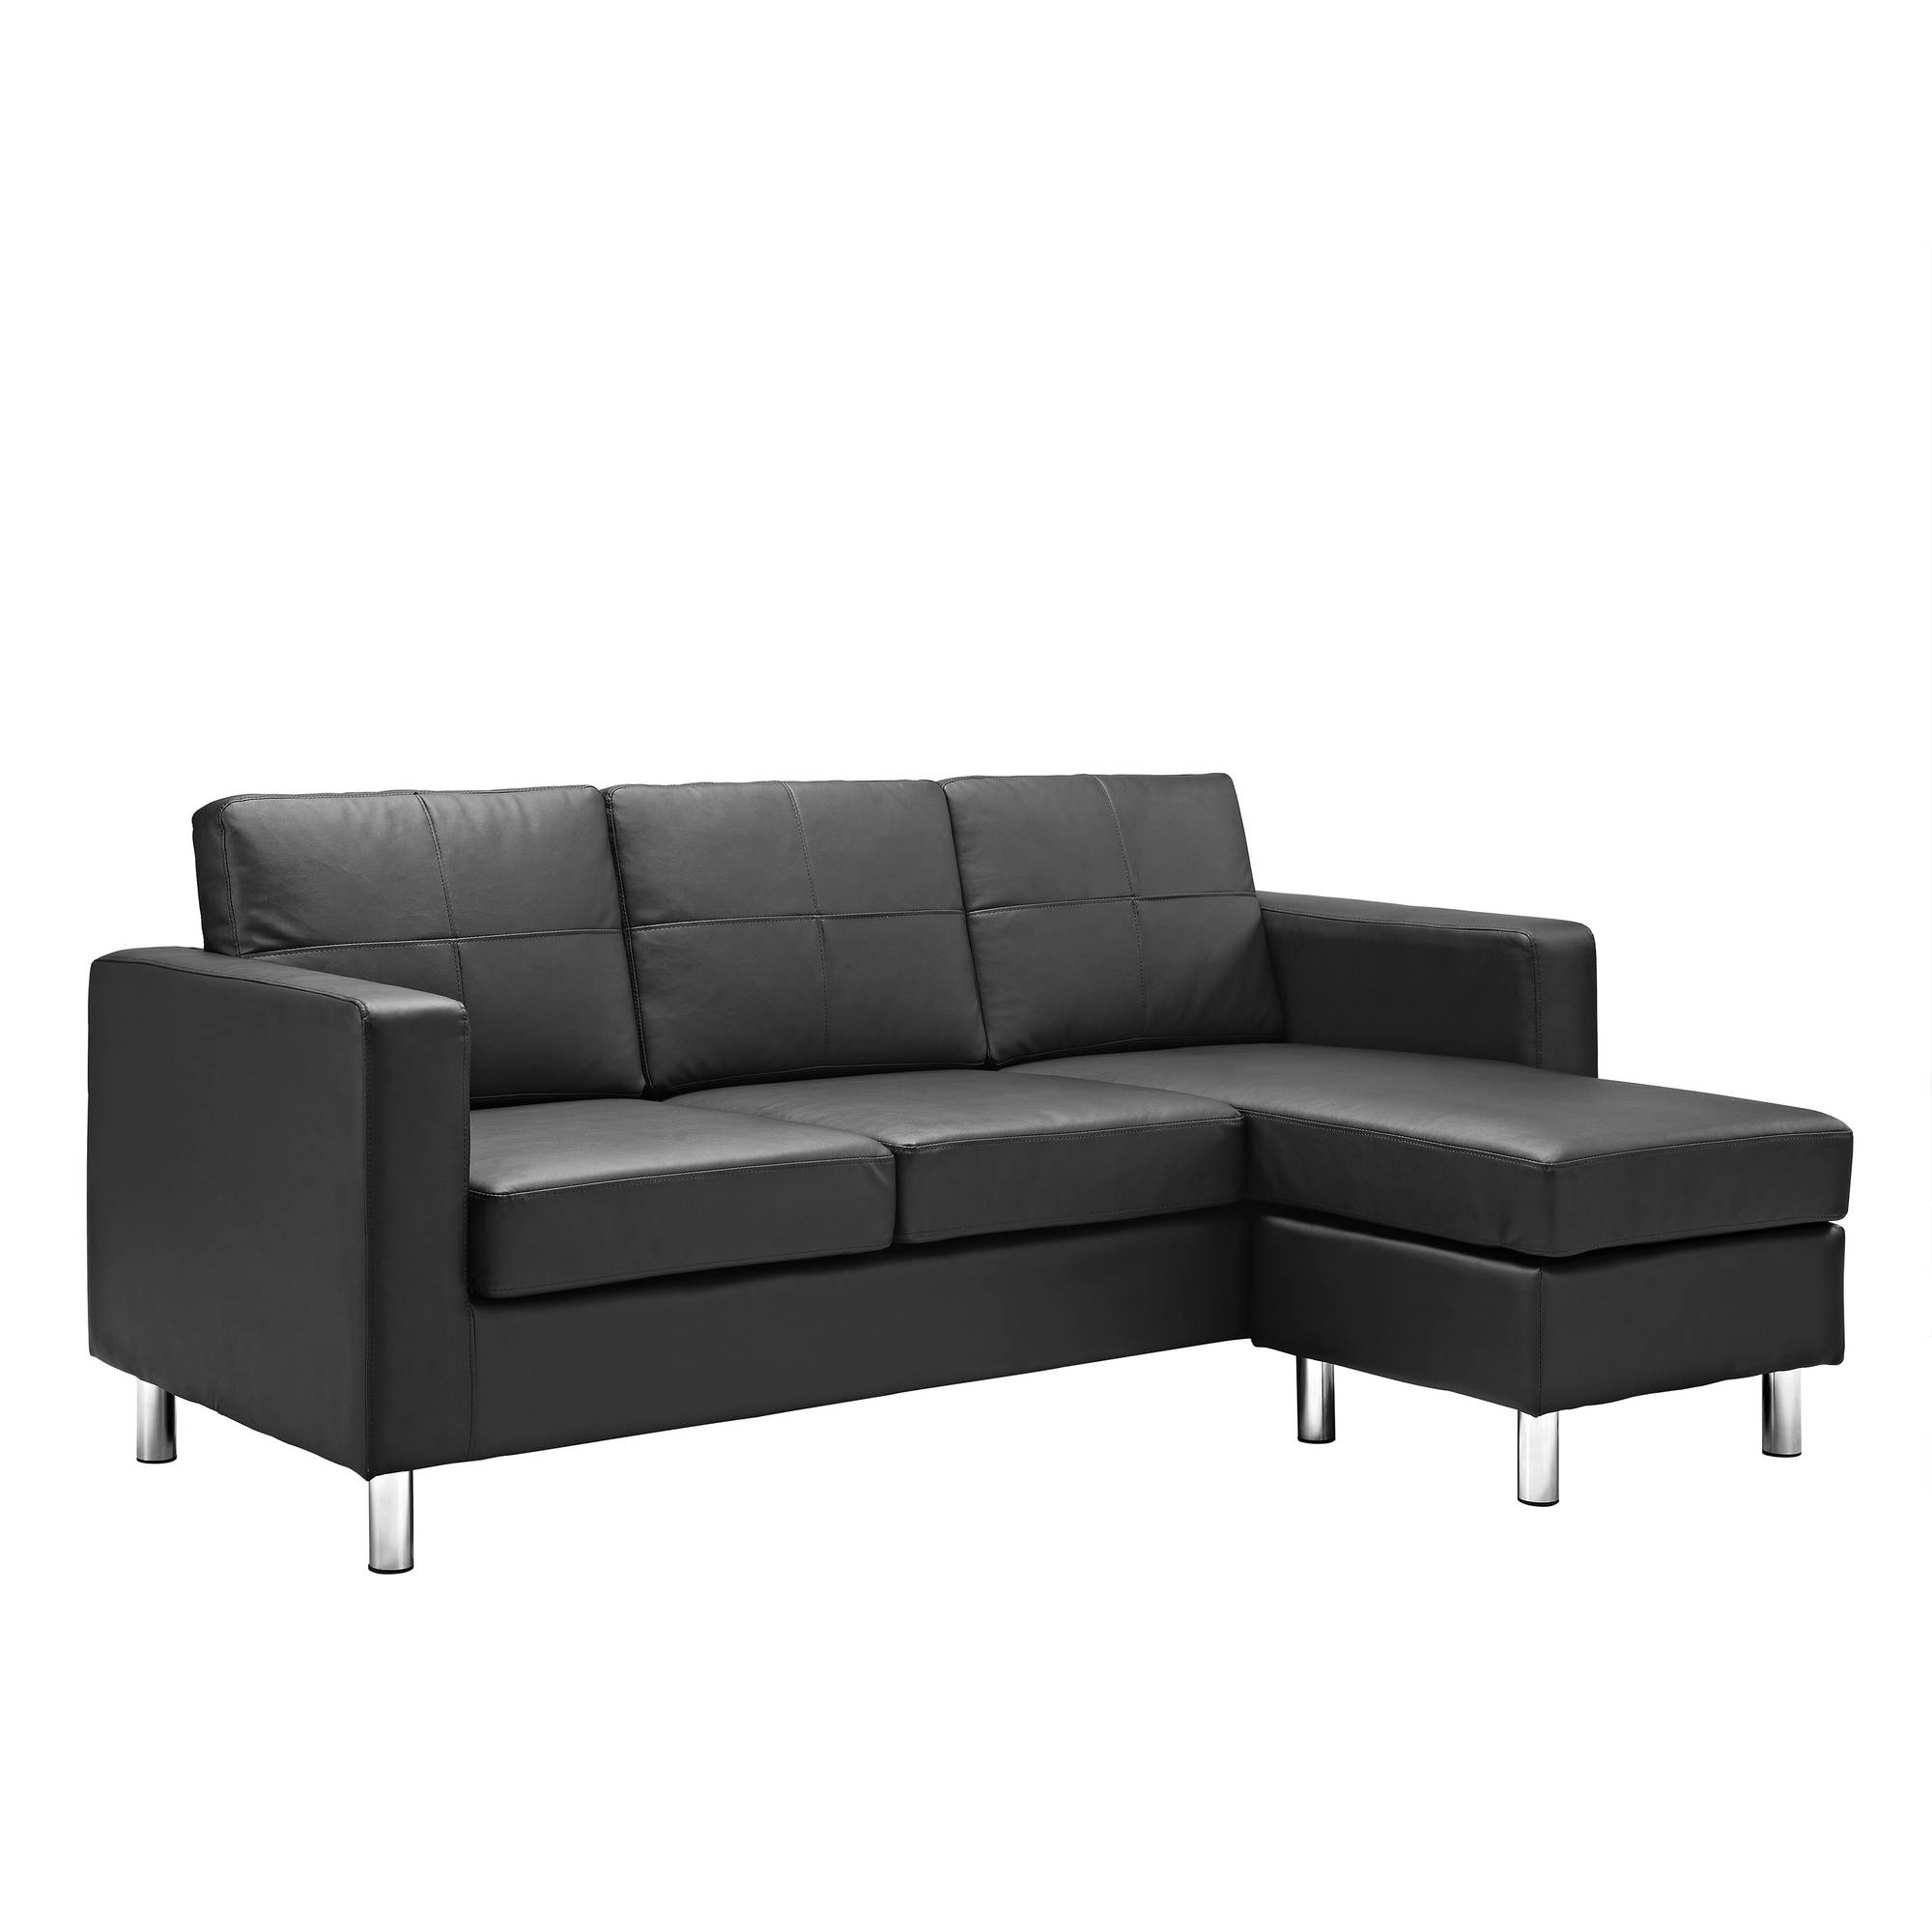 Dorel Living Small Spaces Configurable Sectional Sofa Multiple Throughout Small Sectional Sofa (Image 4 of 15)